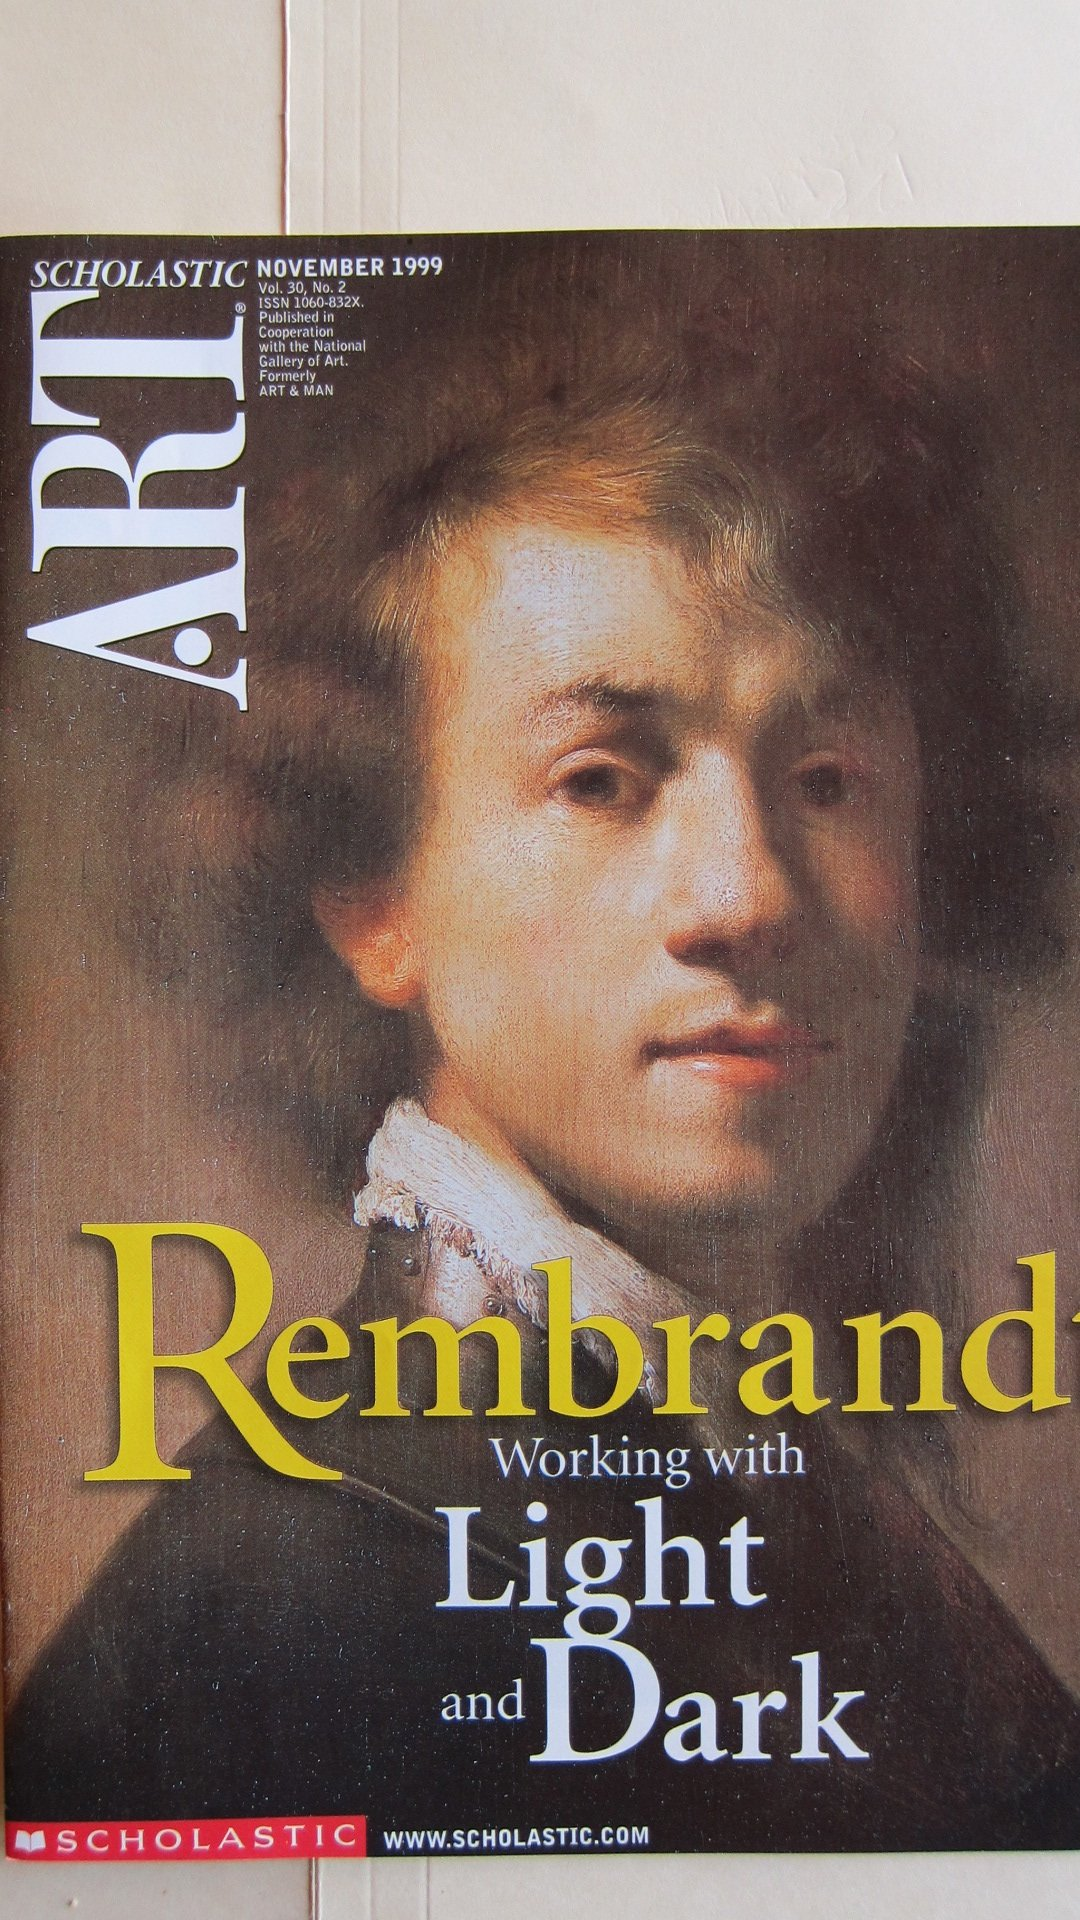 scholastic art magazine rembrandt working with light and dark nov 1999 scholastic art magazine